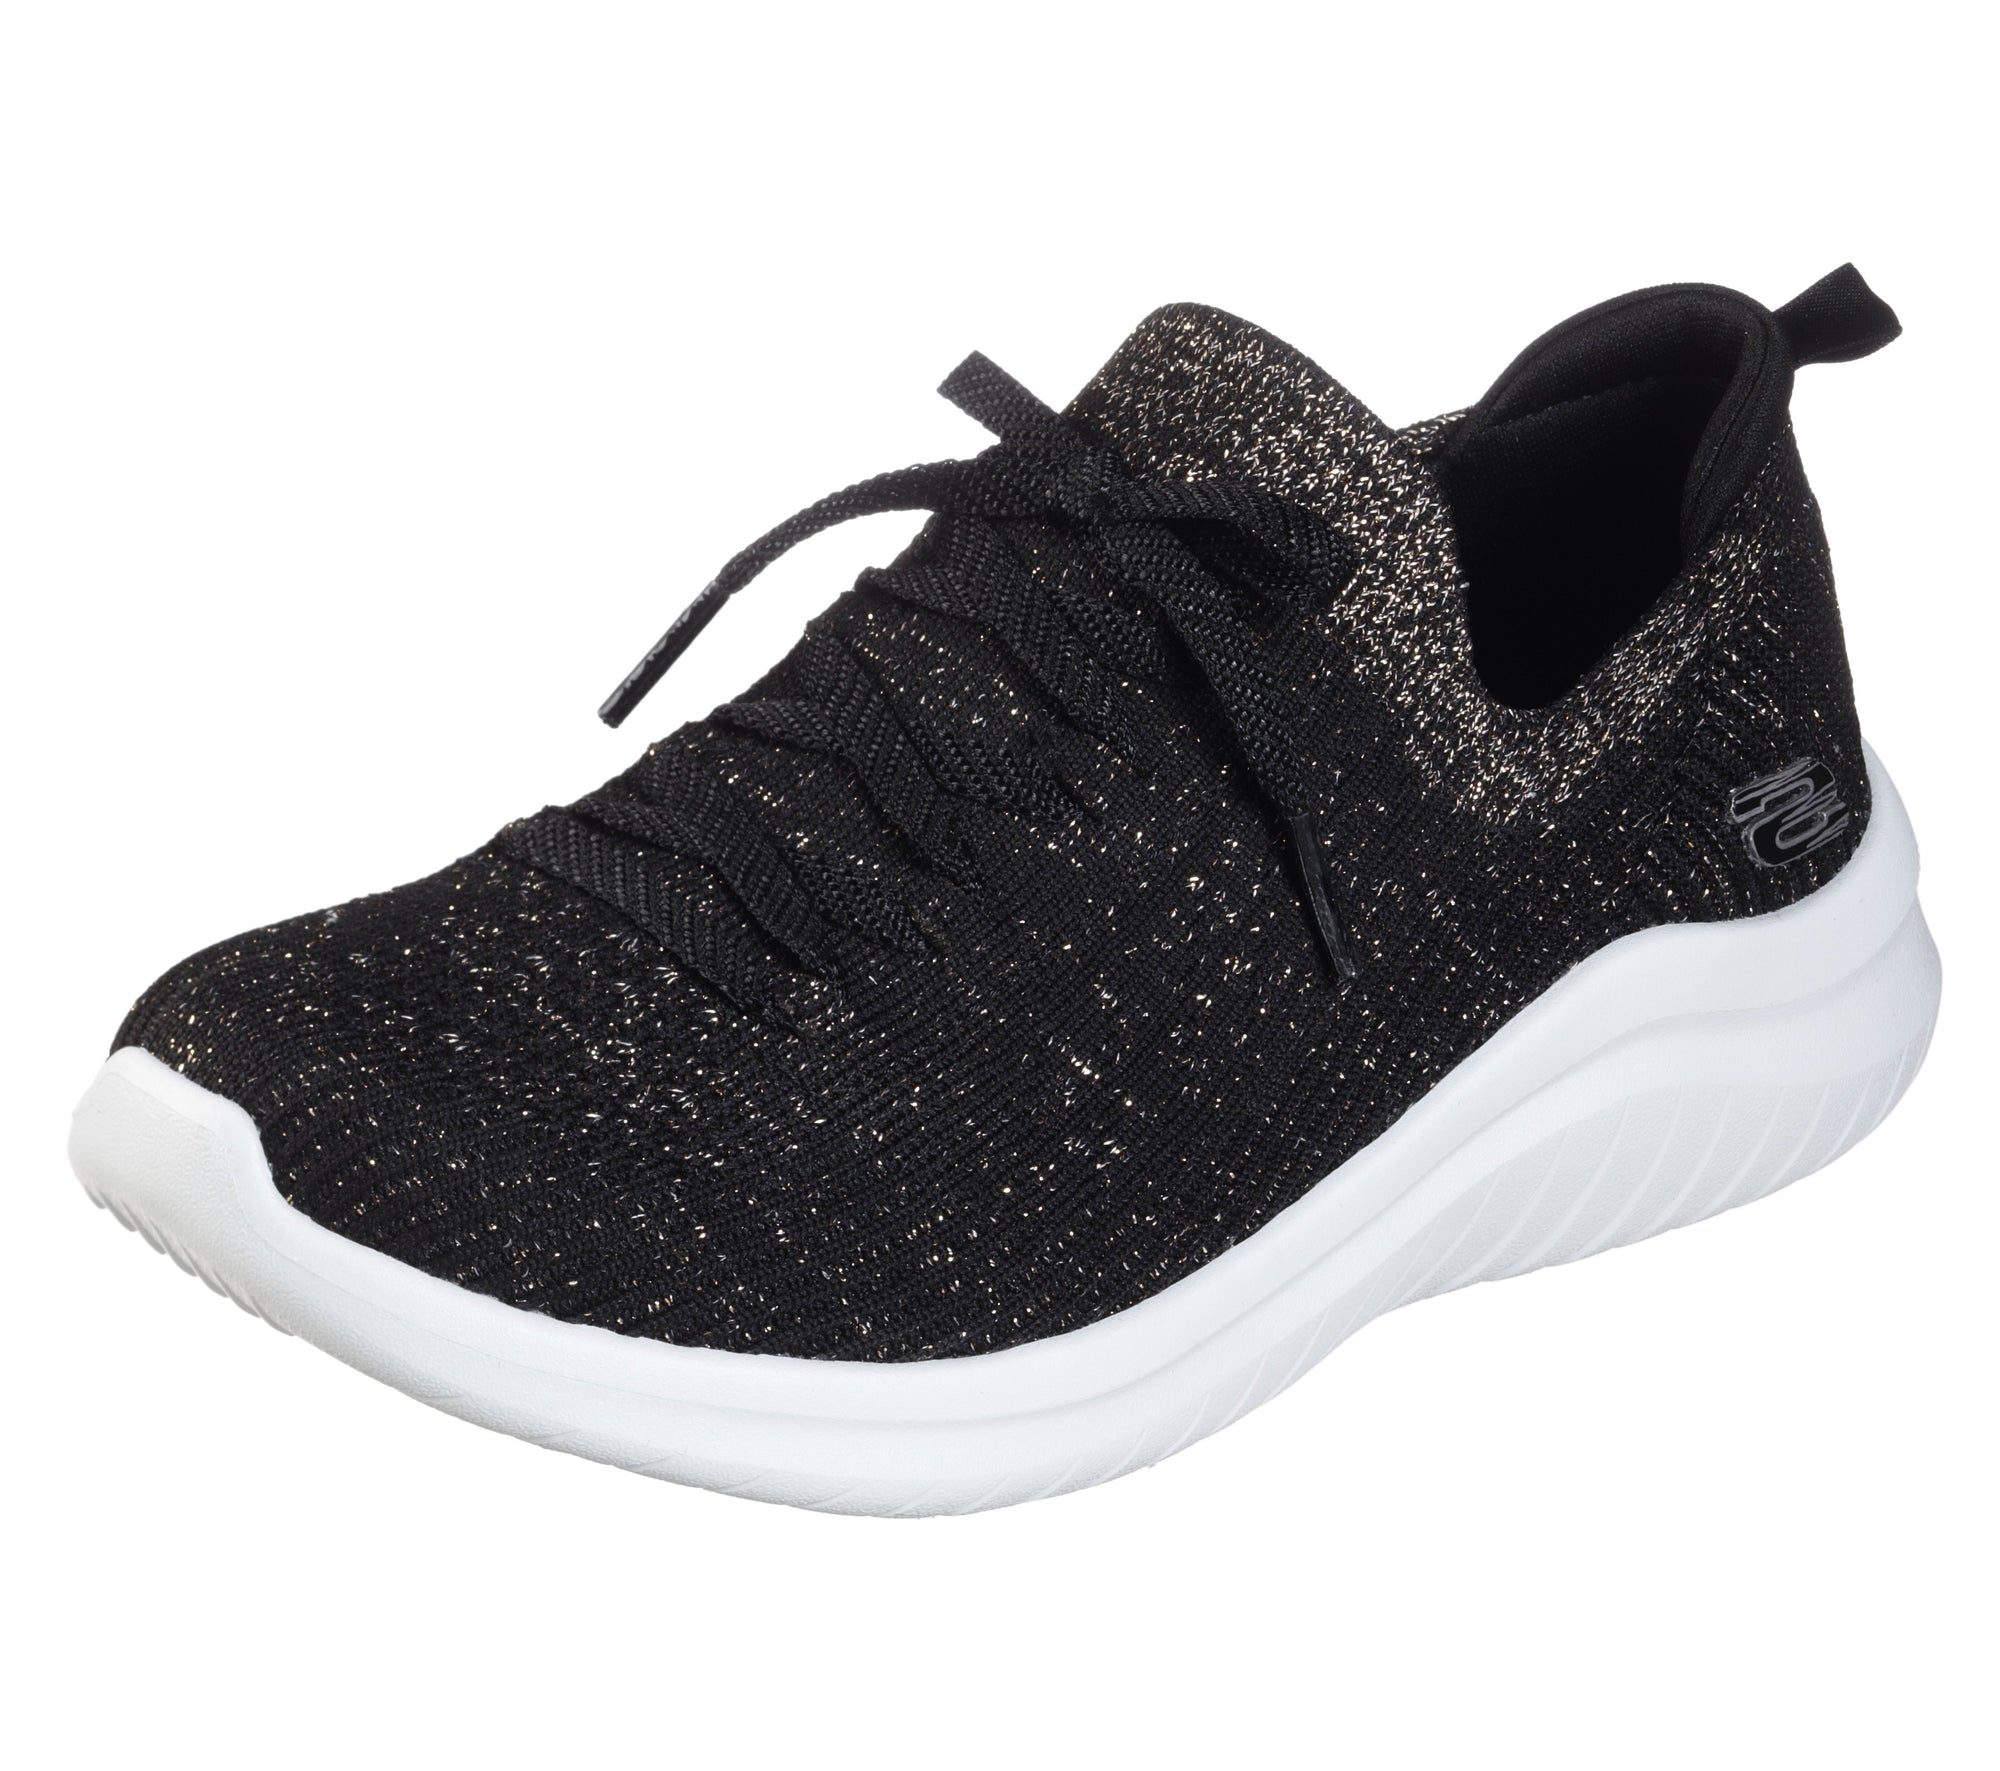 Skechers Air Cooled Memory Foam Black Gold Lace Up Trainer